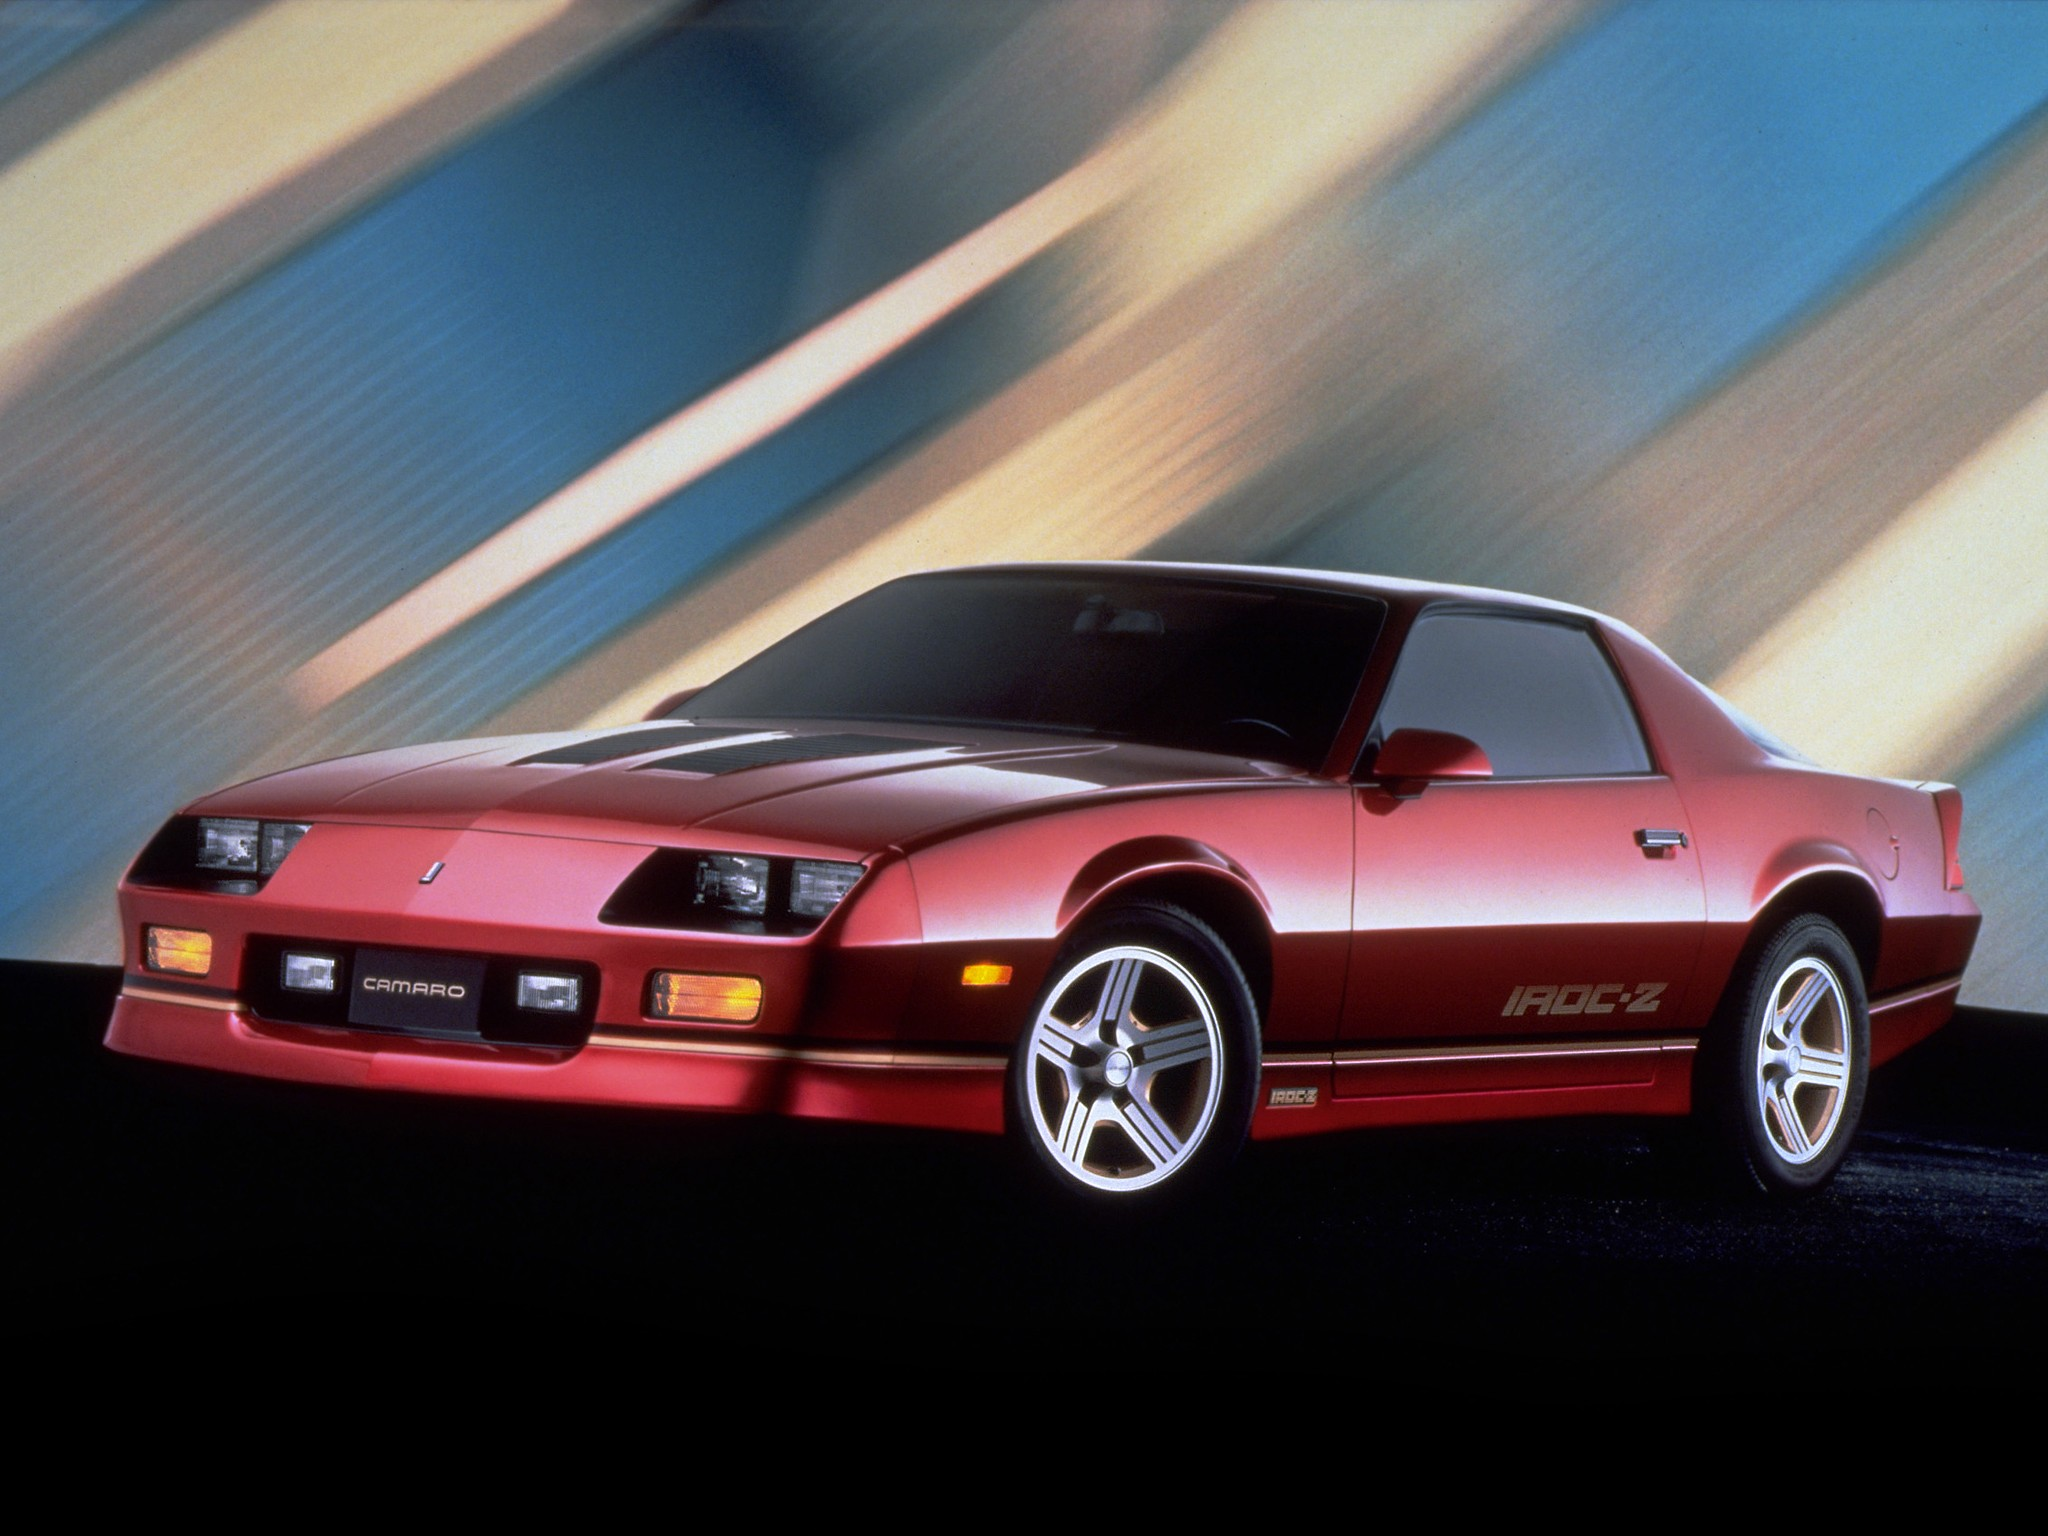 CHEVROLET Camaro IROC-Z28 specs & photos - 1984, 1985 ...